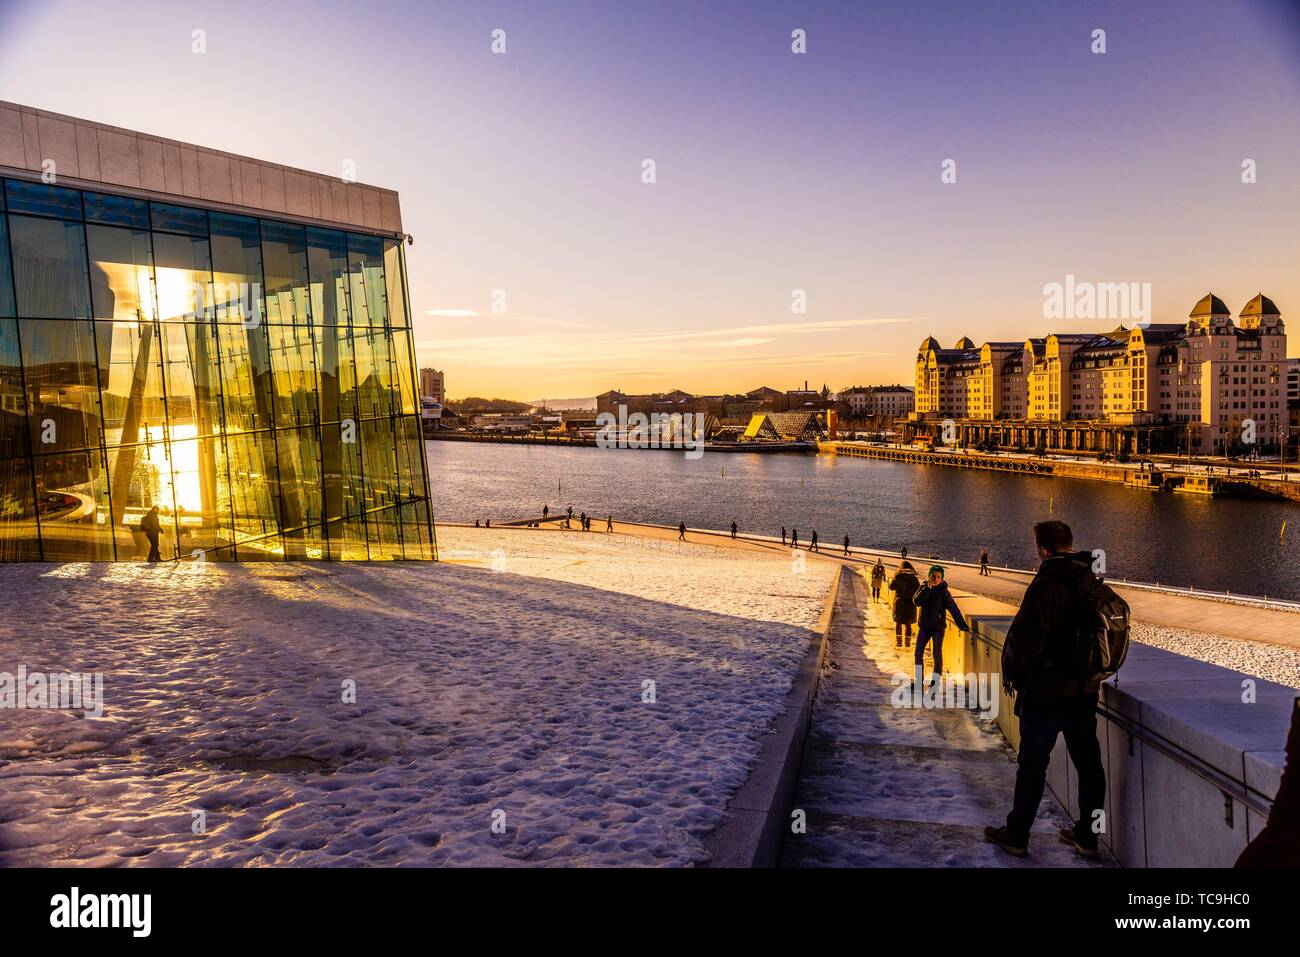 The Oslo Opera House, at the edge of the Oslo Fjord, built in 2008, Oslo, Norway. Stock Photo